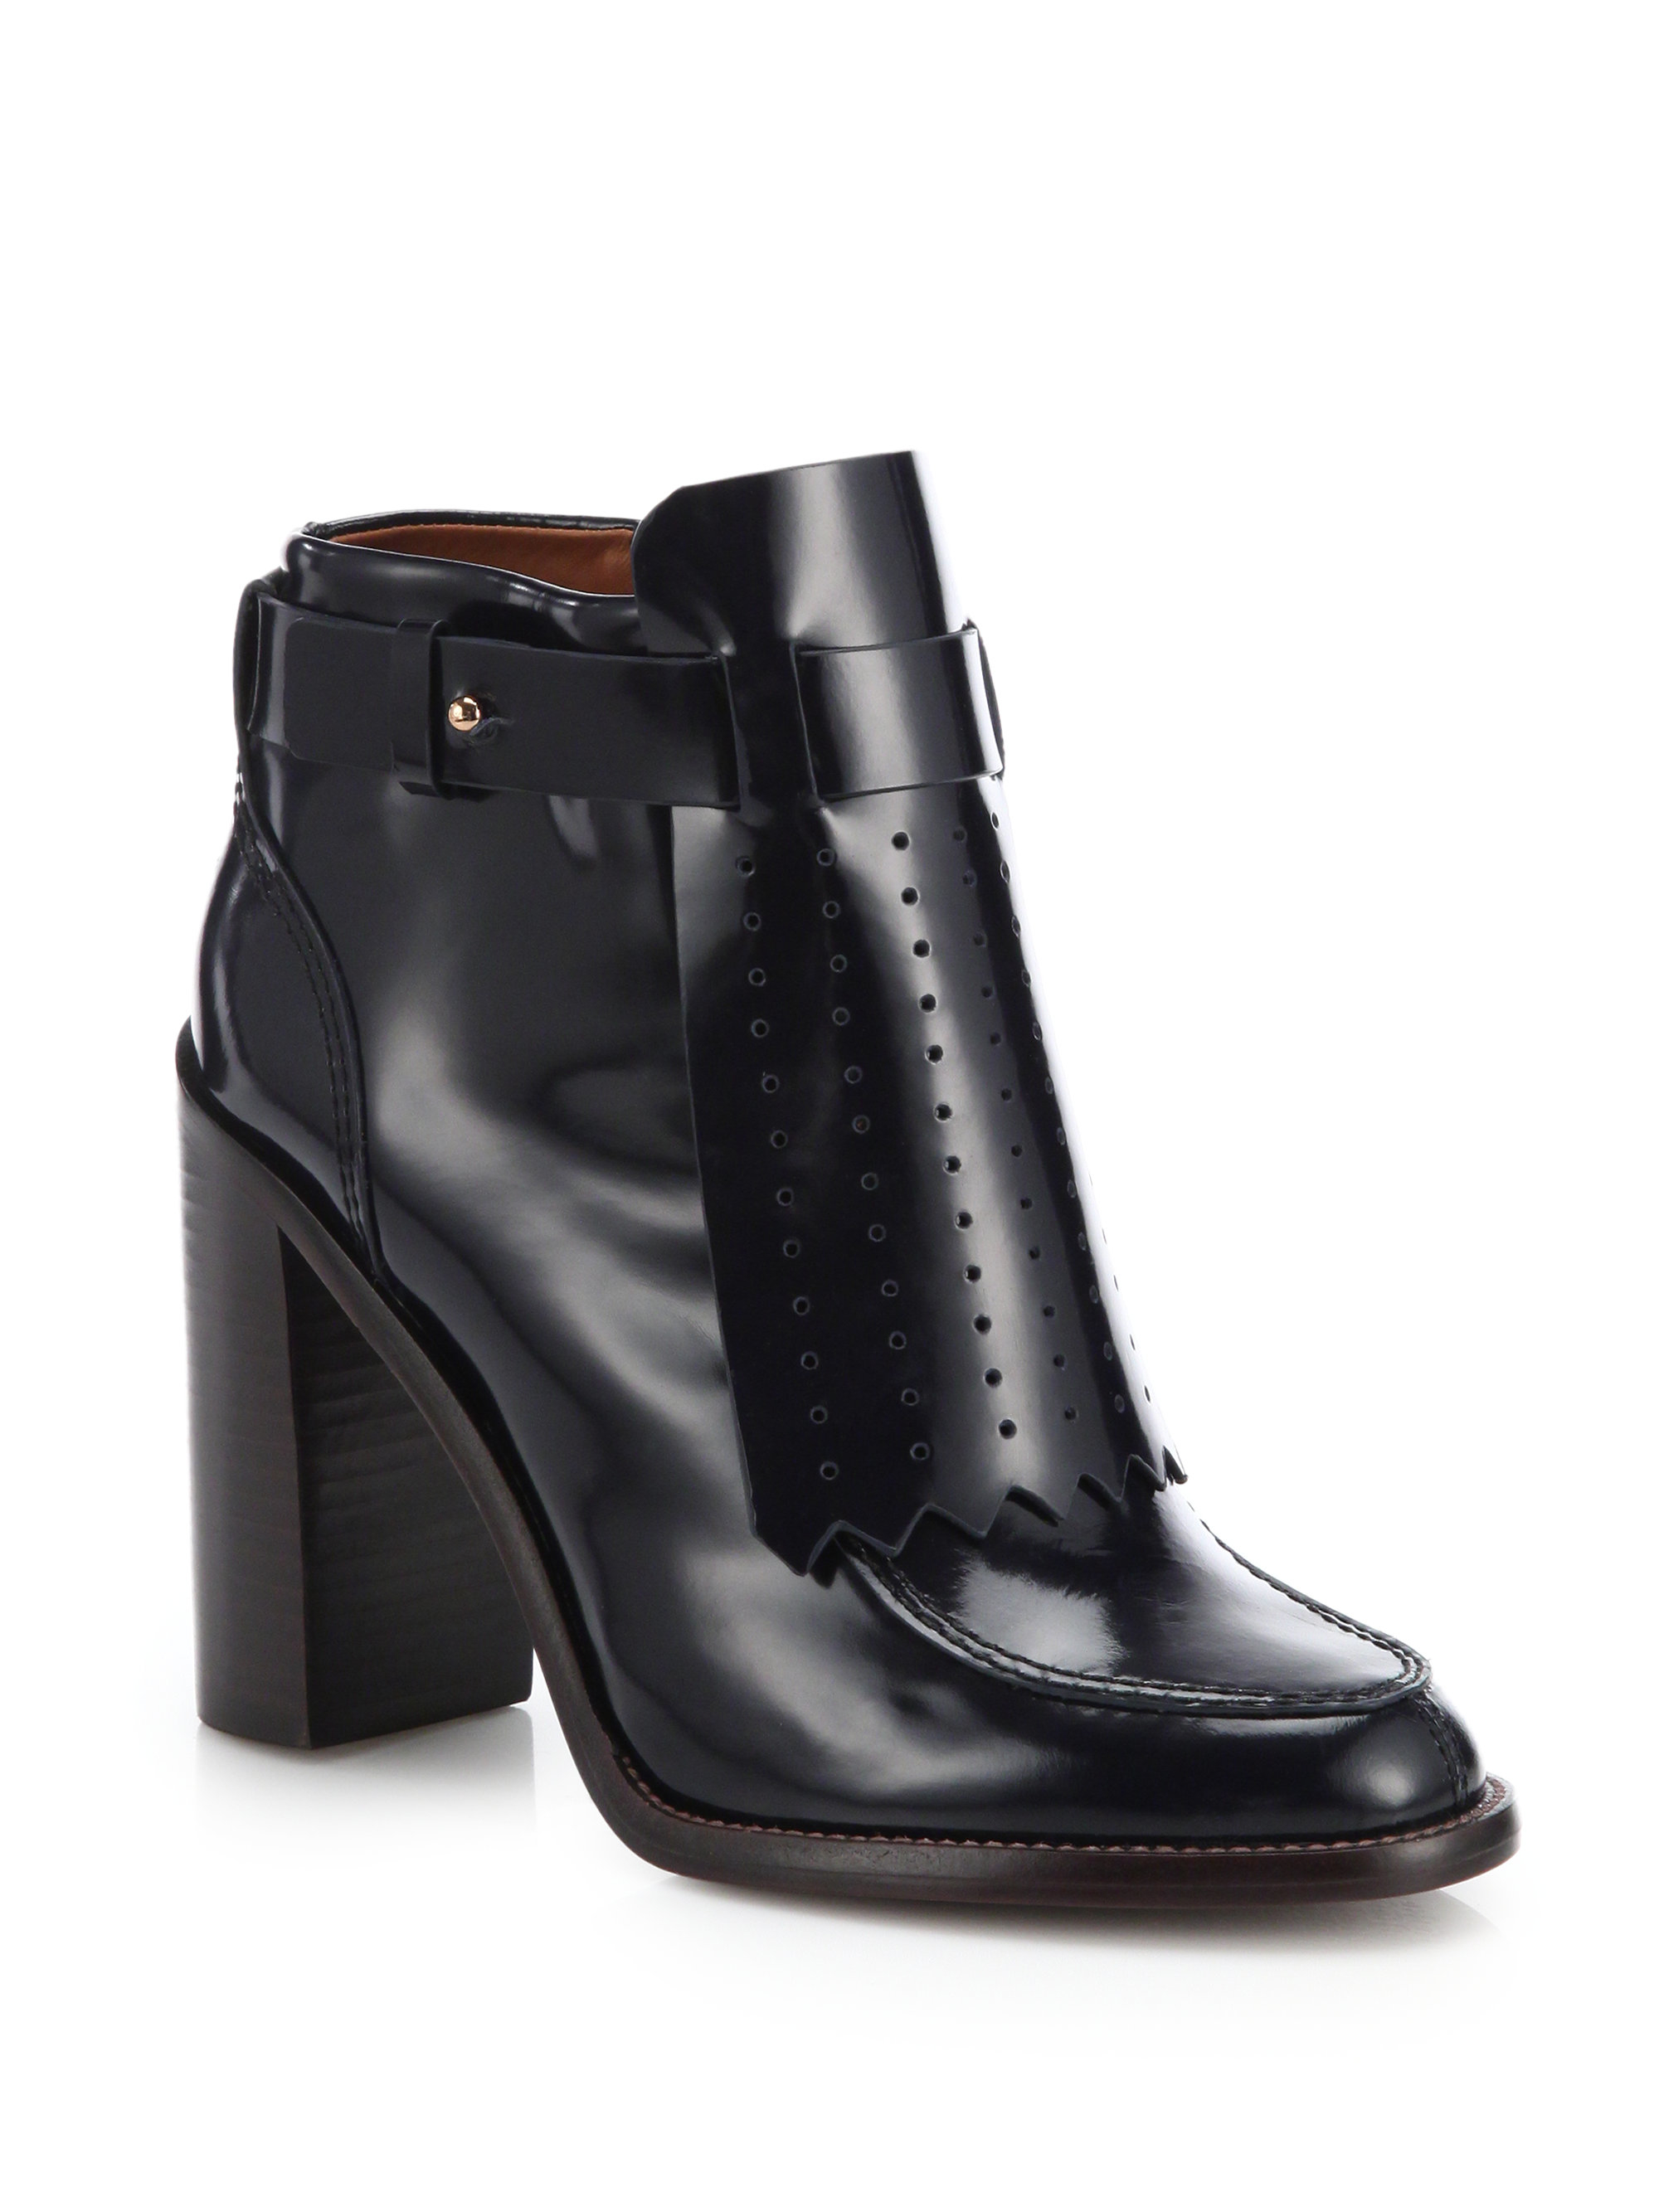 c52bdce76125d9 france lyst tory burch hyde leather perforated fringe ankle boots in black  7f06b d0e6d